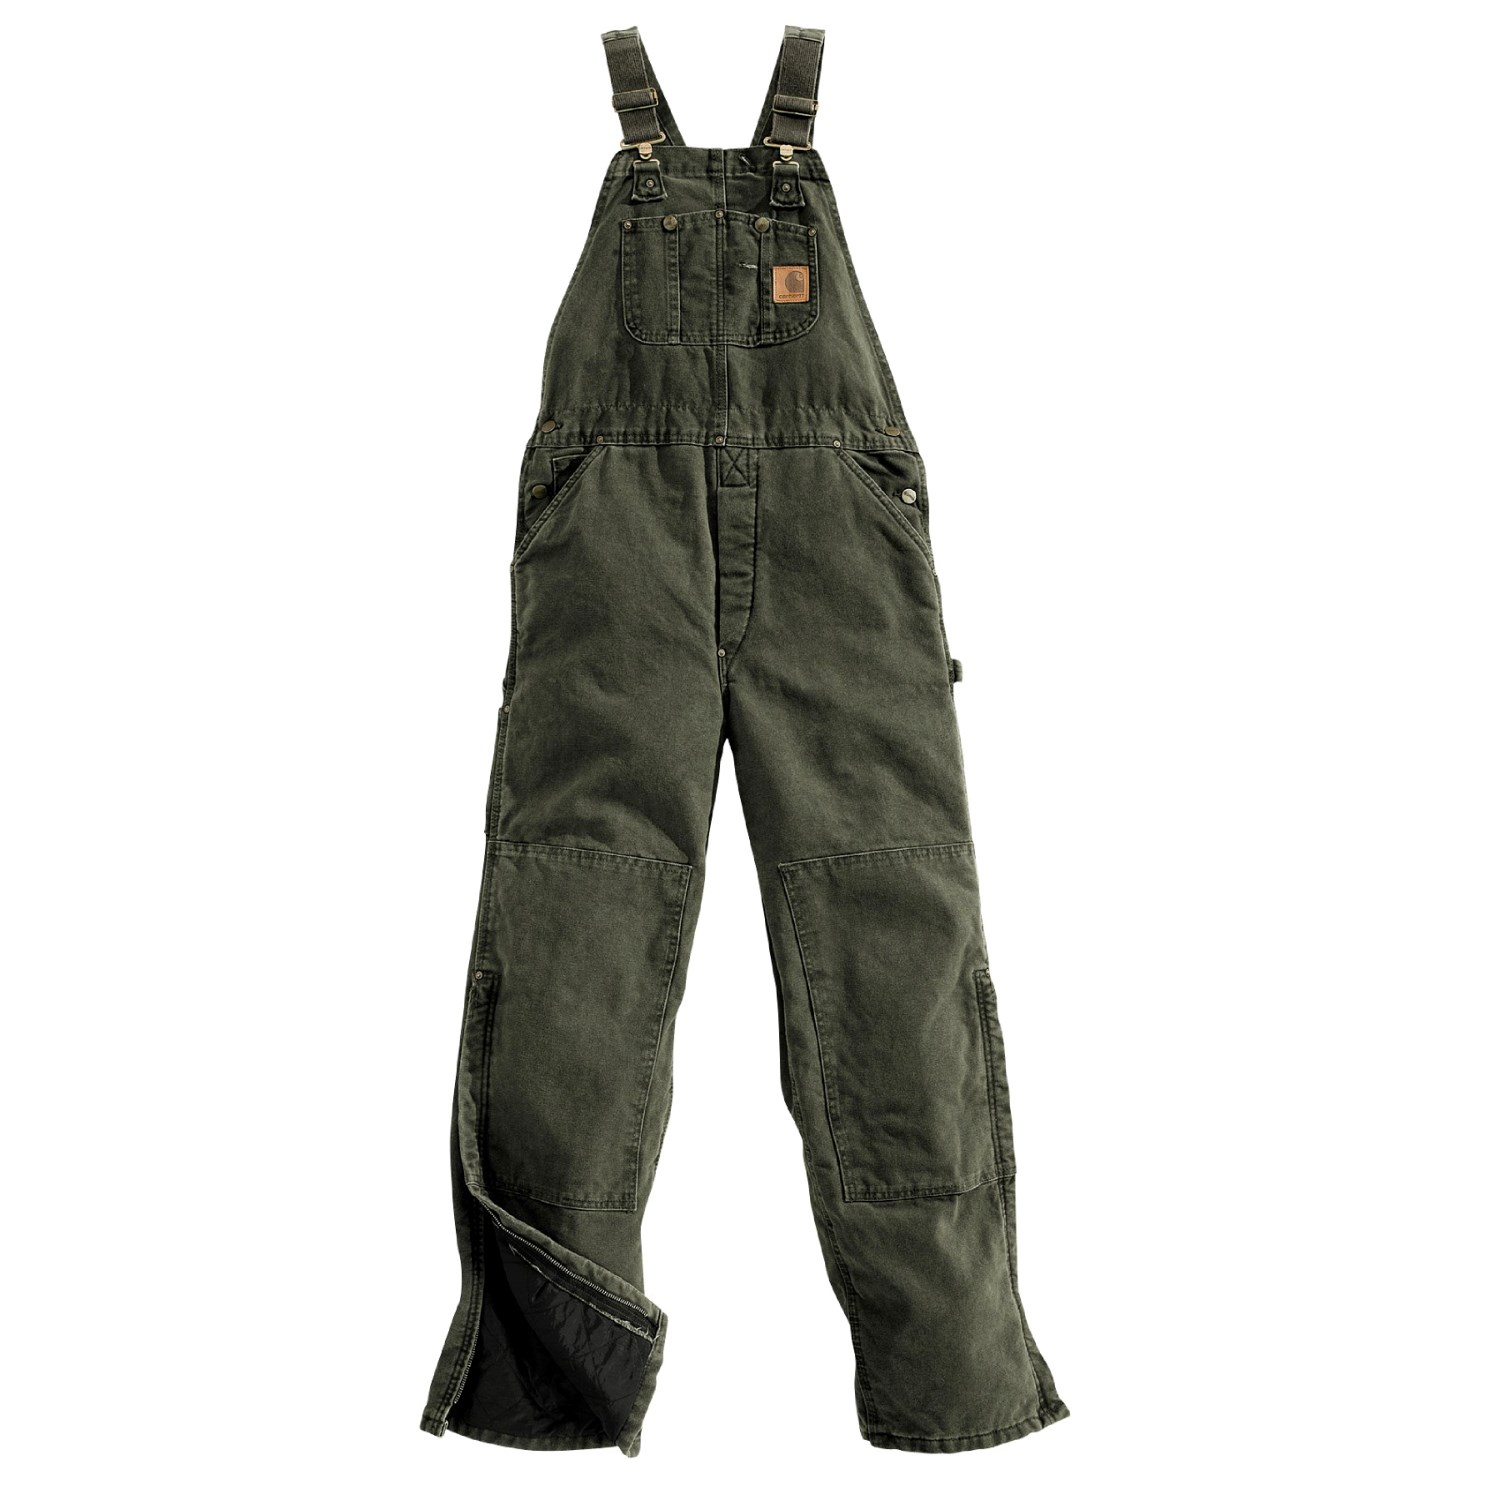 Davis' Big & Tall Men's Wear offers everything for your big and tall workwear needs. We have overalls and coveralls from all the major workwear brands to fit the big man or the tall man.